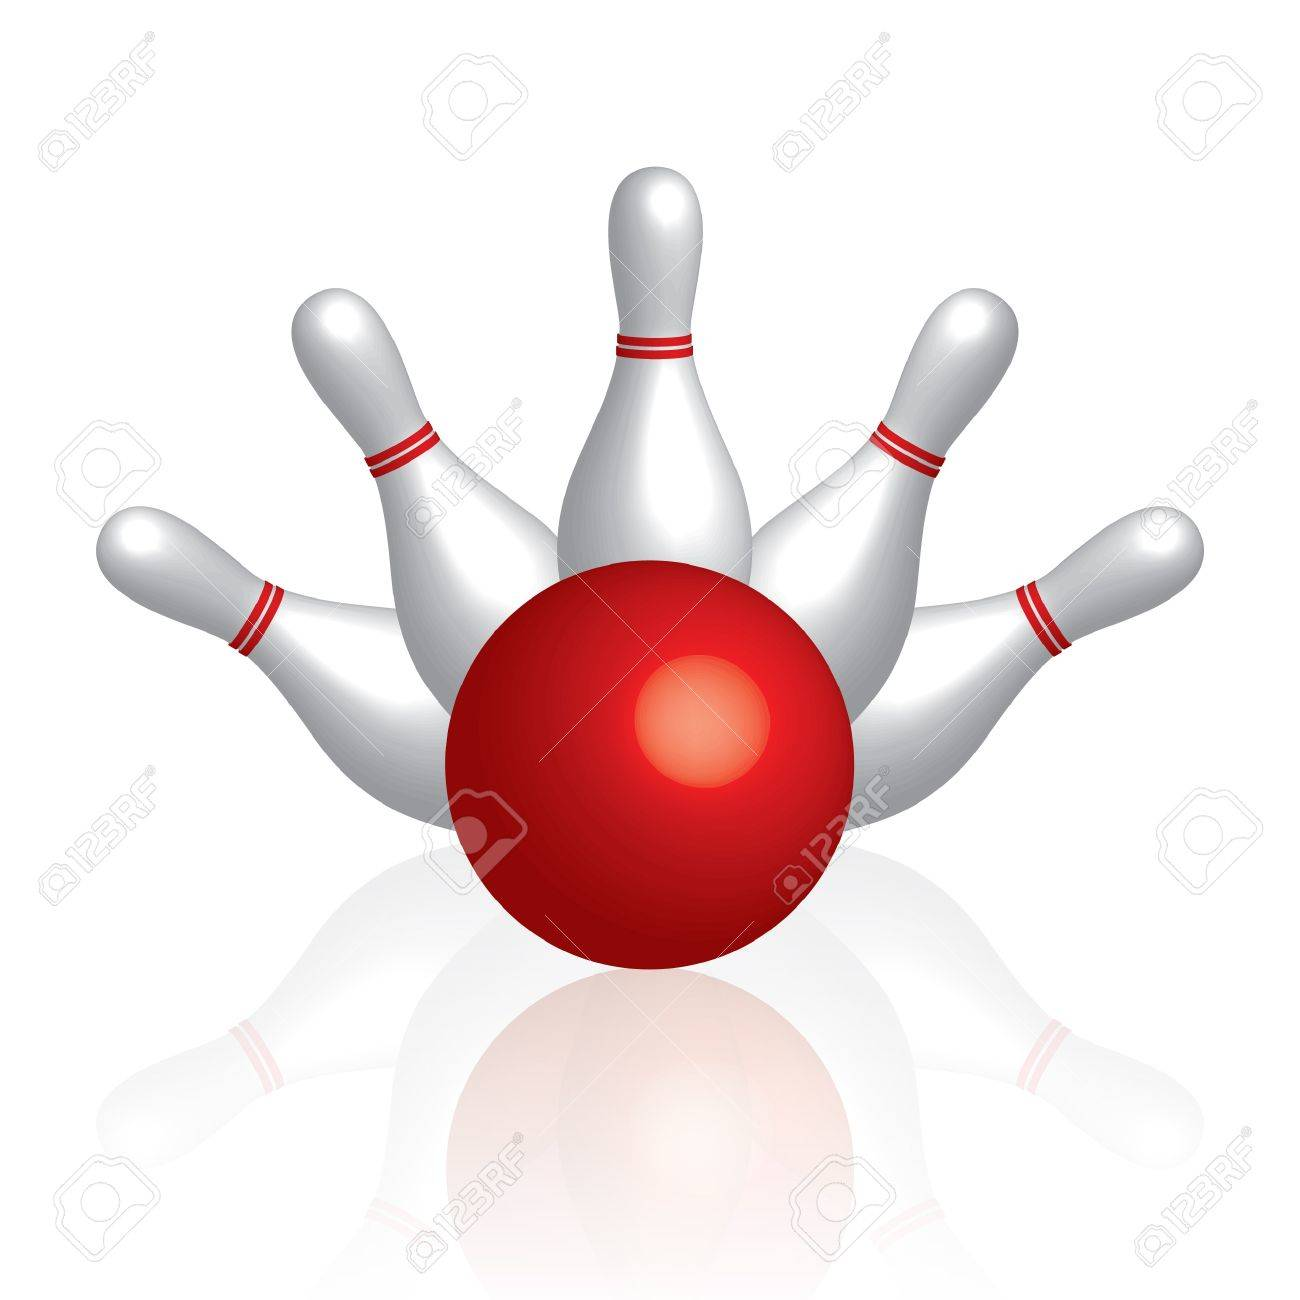 Bowling Stock Vector - 12358089